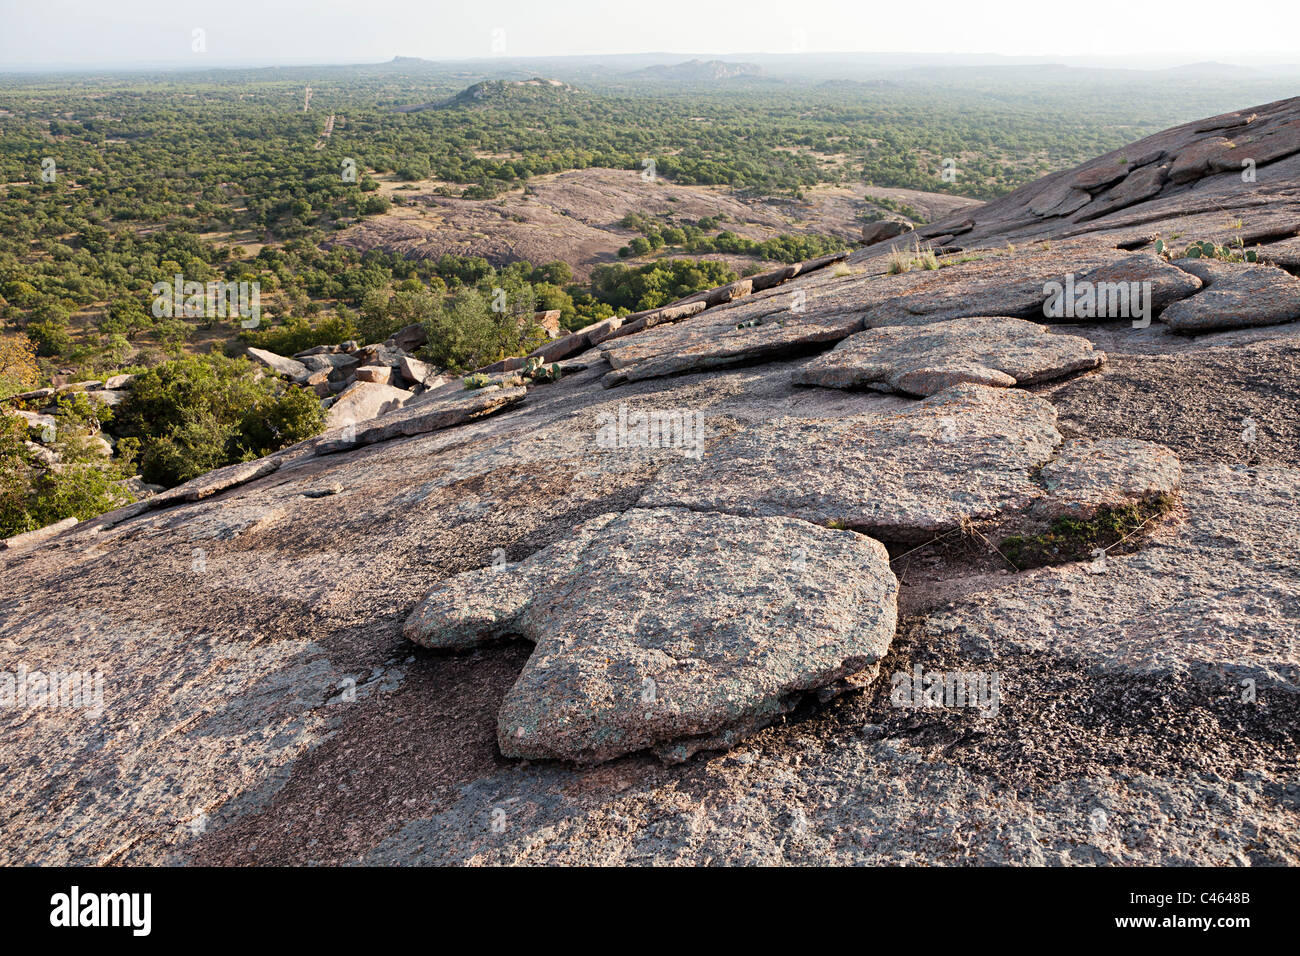 Verwitterter Granit Enchanted Rock State Natural Area Texas USA Stockbild